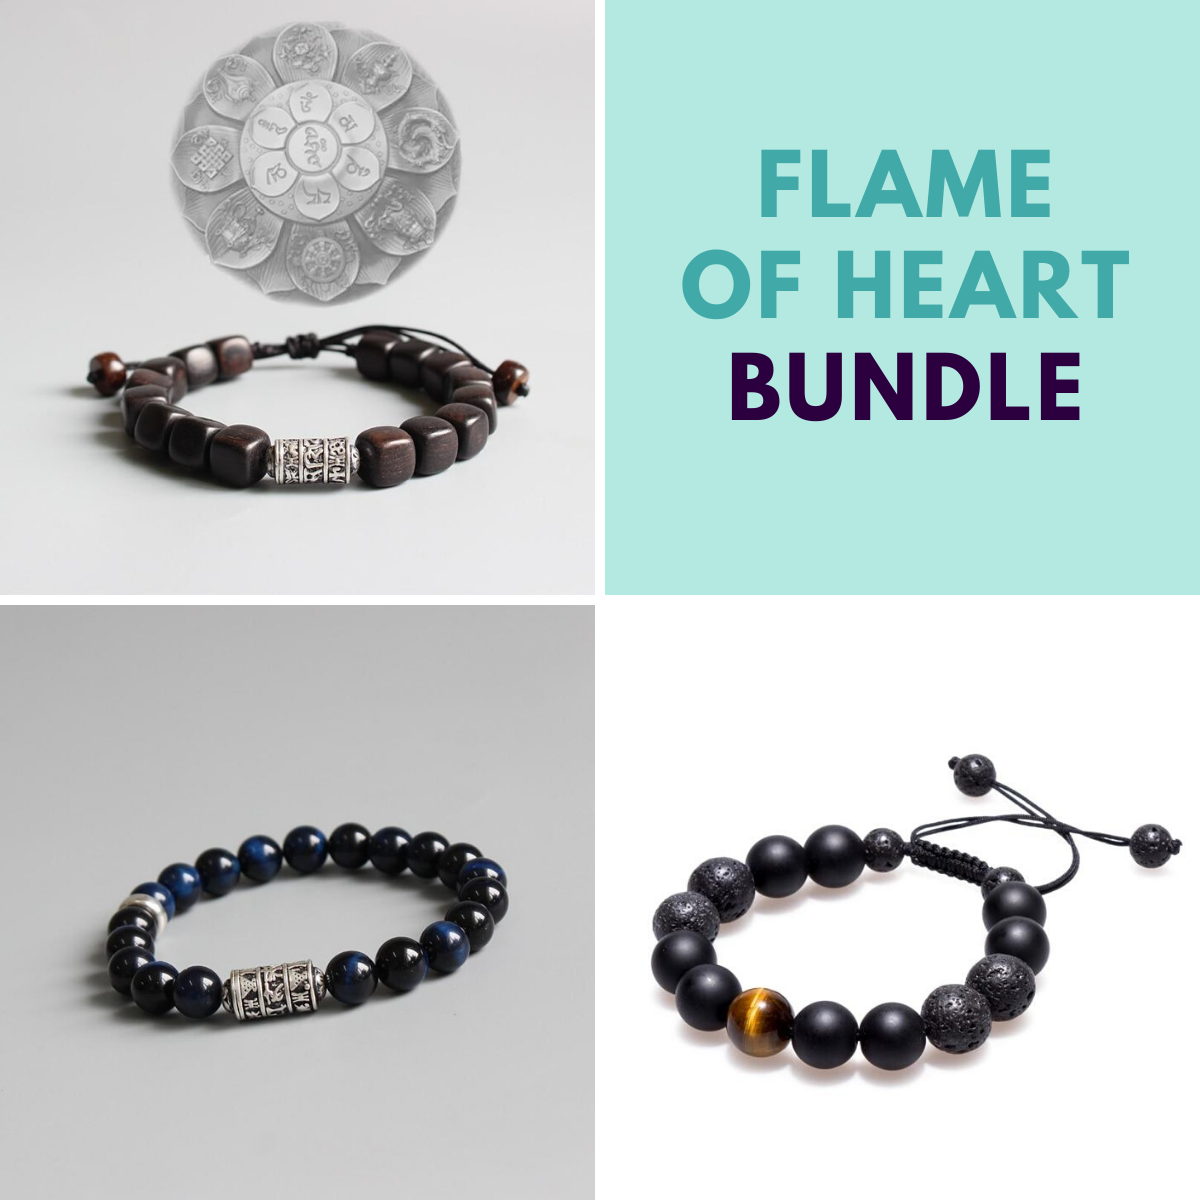 Flame of Heart Bundle